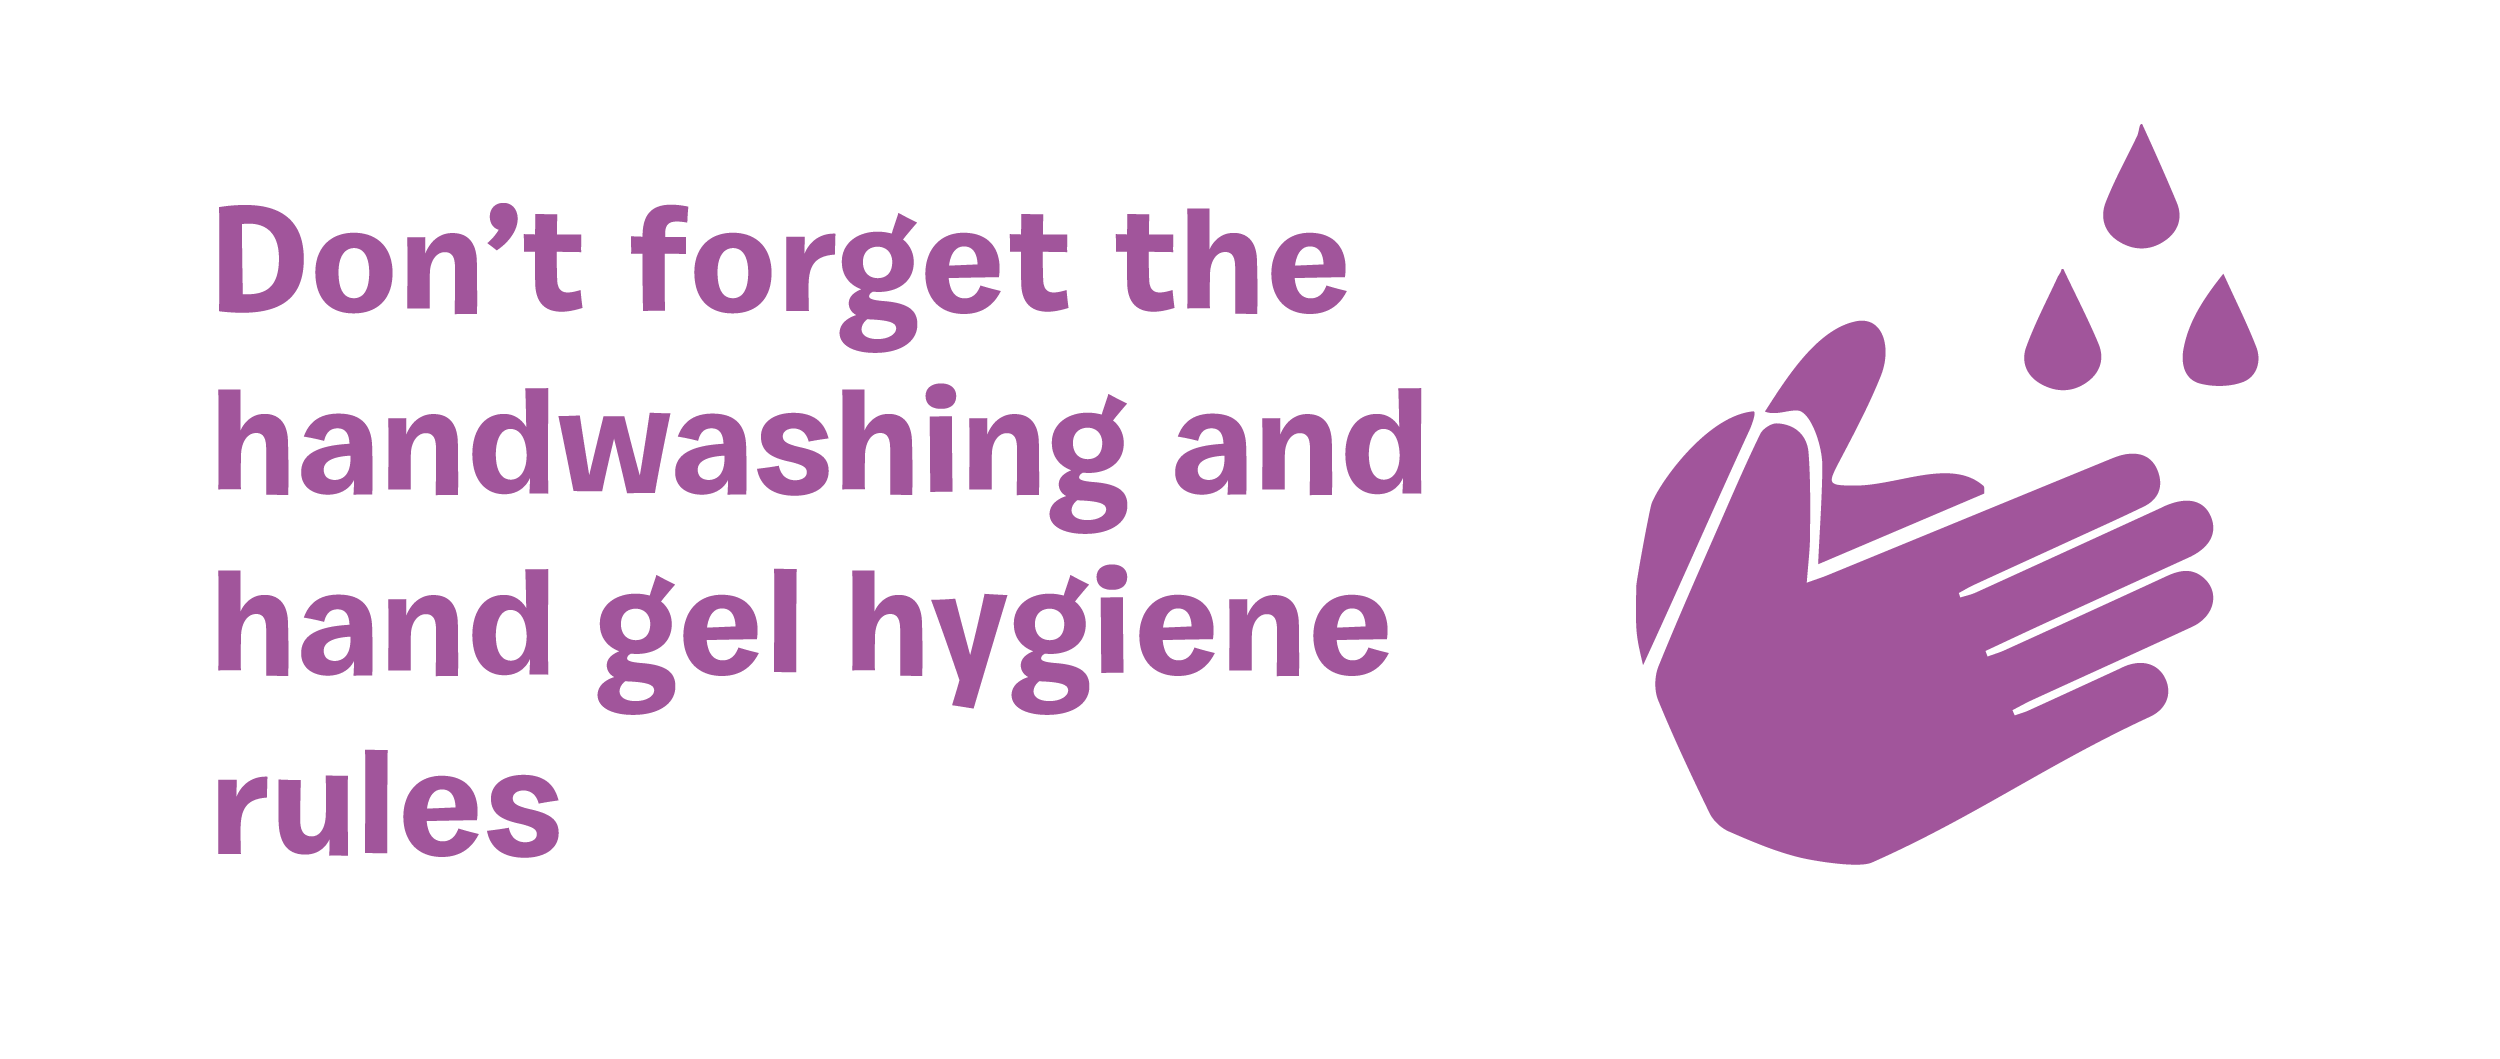 Don't forget the handwashing and hand gel rules